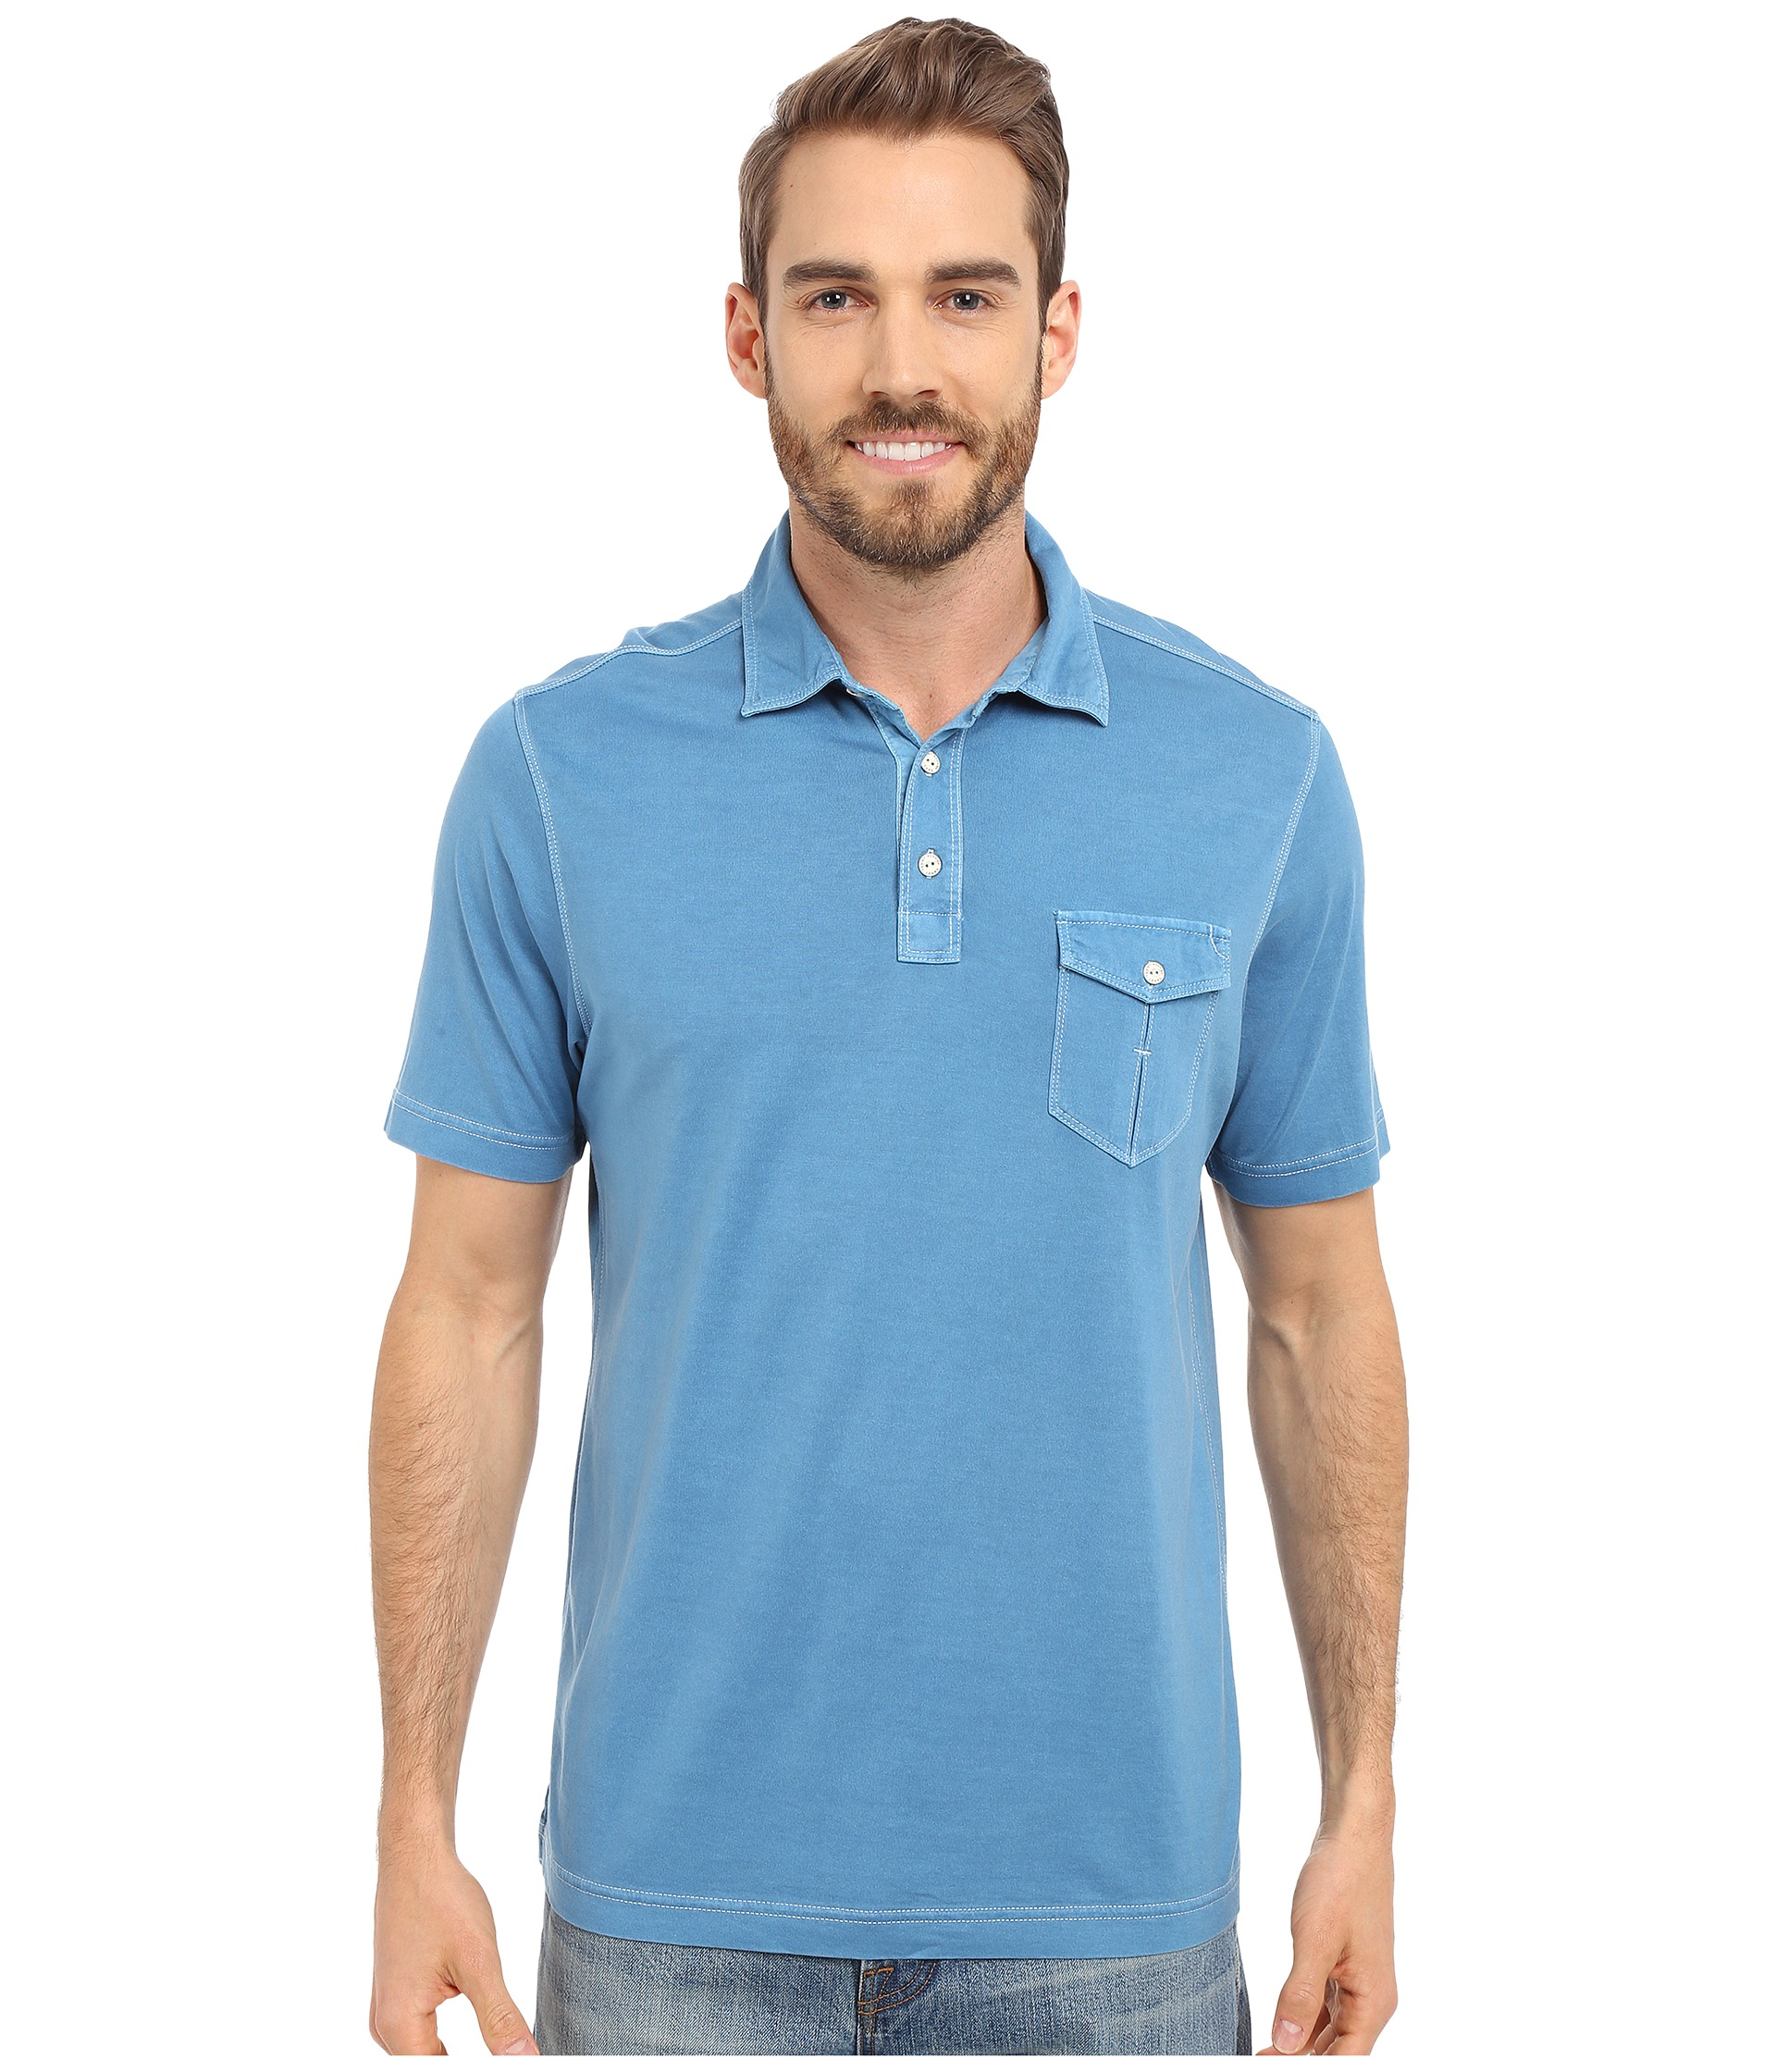 Tommy bahama vacanza polo free shipping both ways for Tommy bahama polo shirts on sale